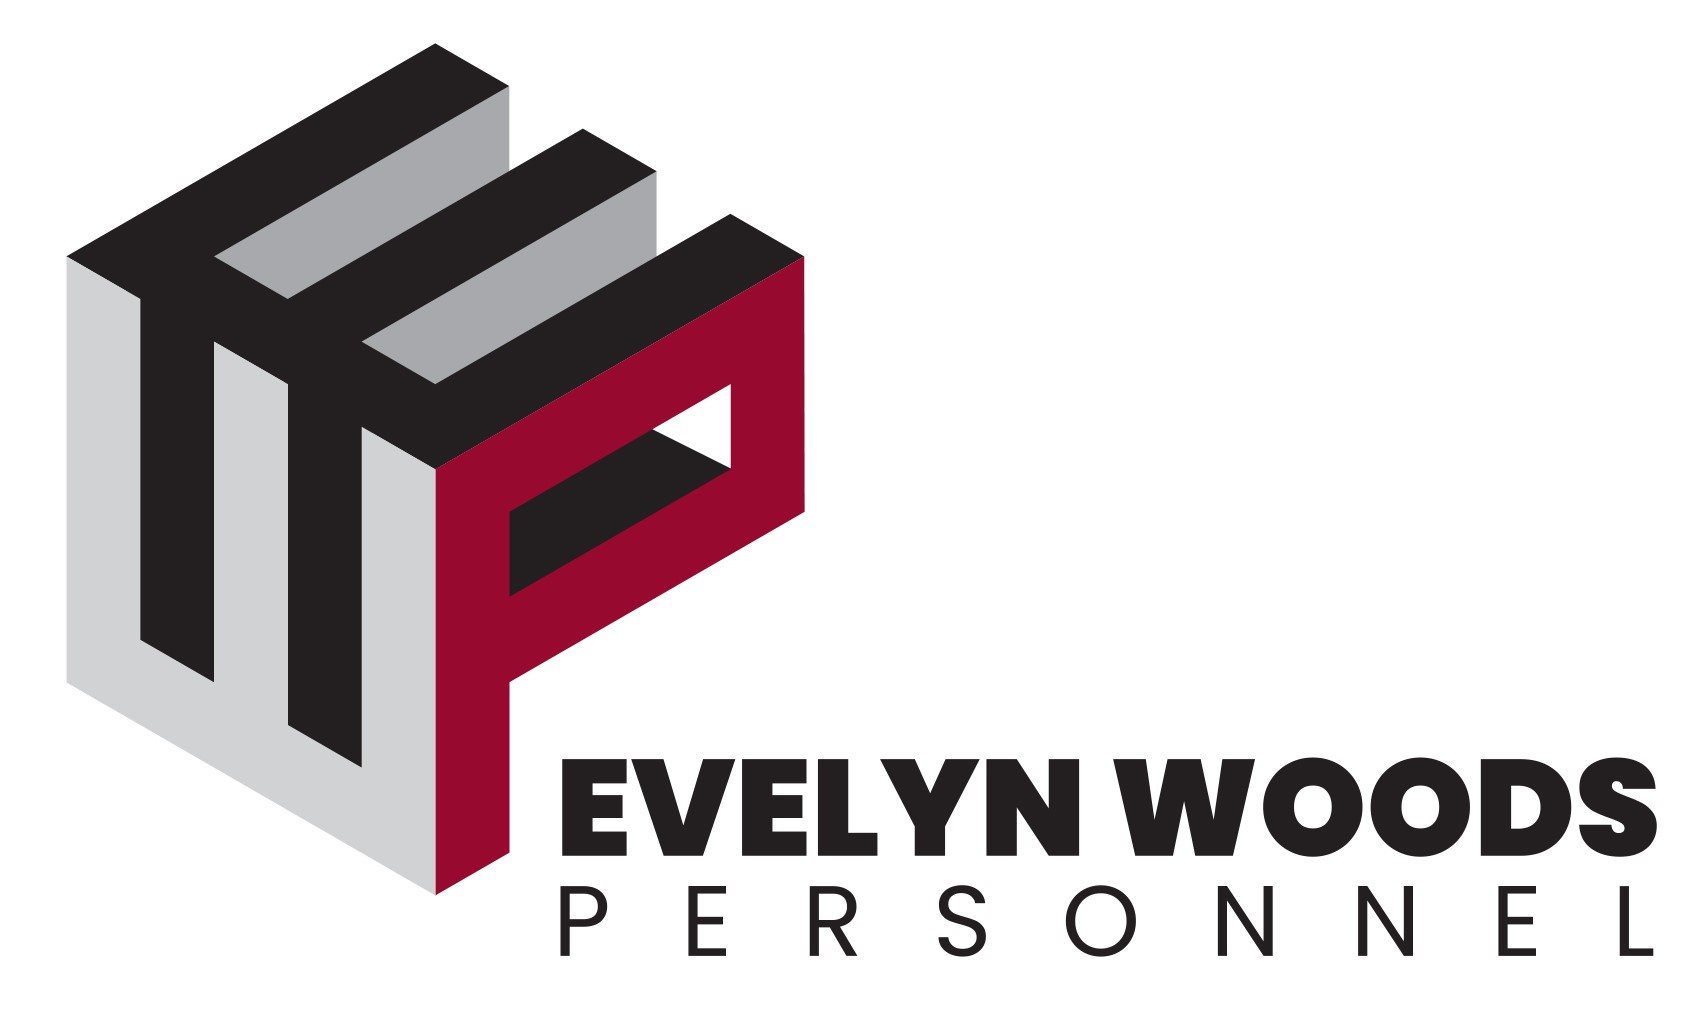 Evelyn Woods personnel and recruitment